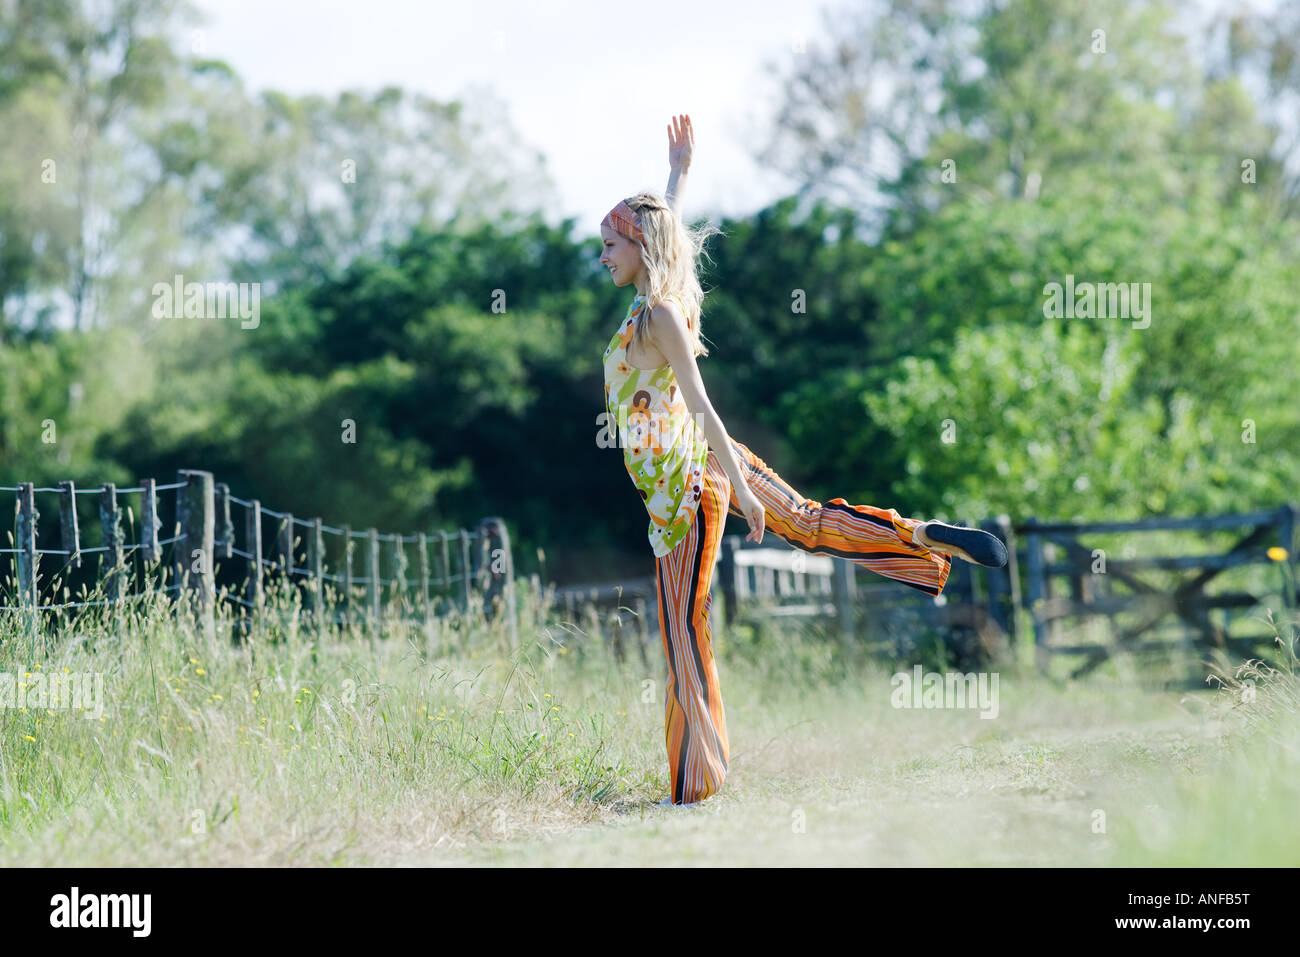 Young woman standing on one leg in rural field with arm raised - Stock Image